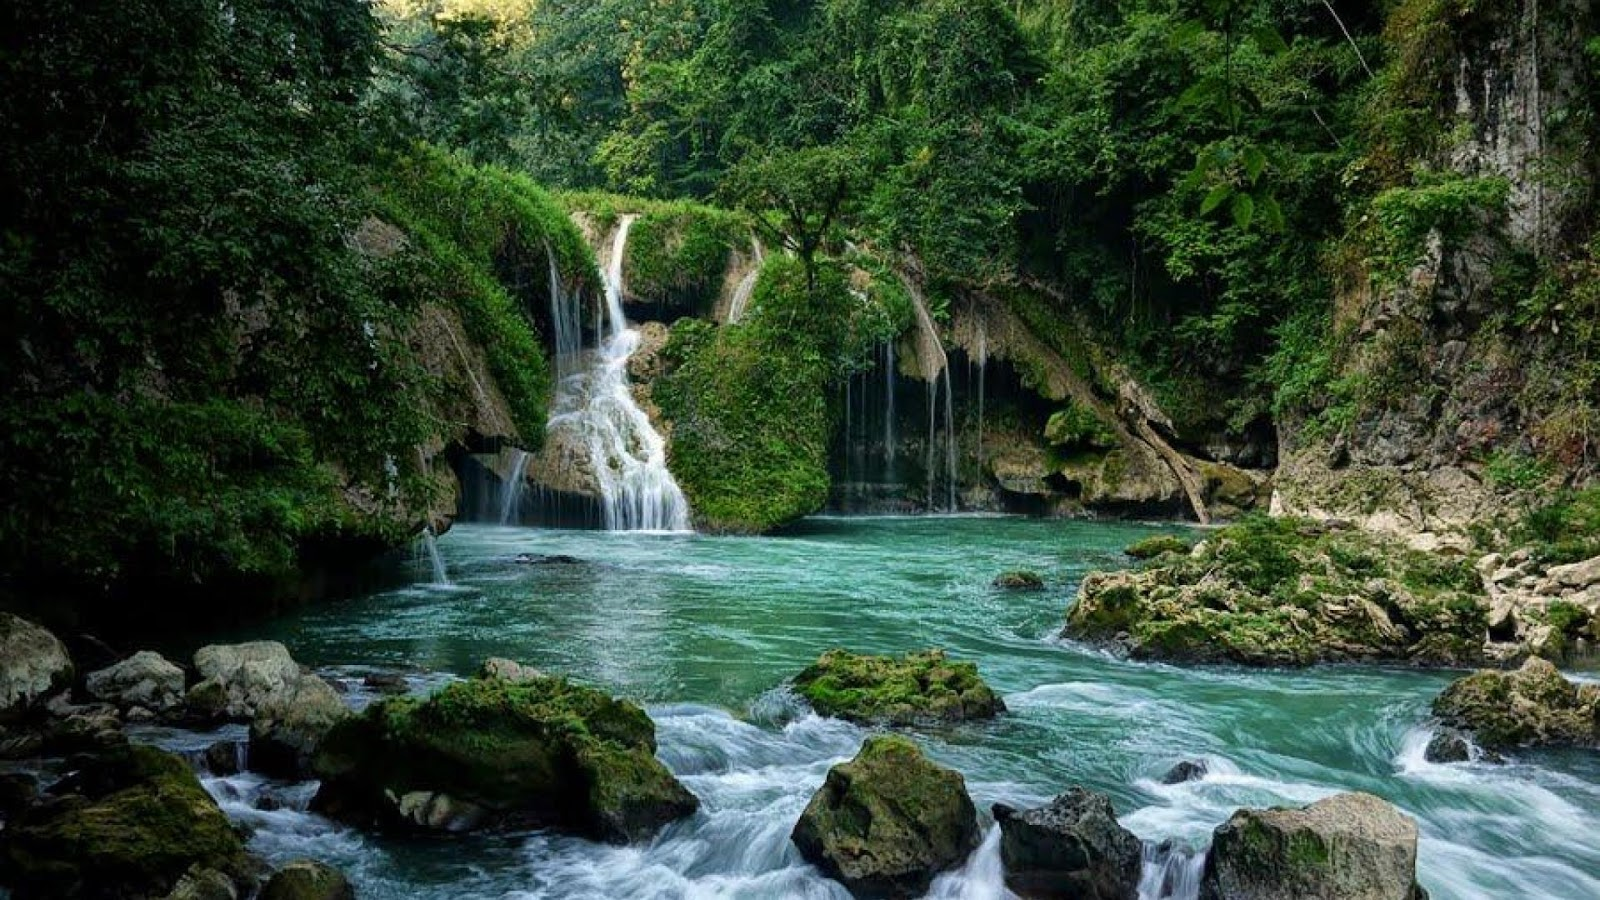 Waterfall Wallpaper Hd: Android Apps On Google Play